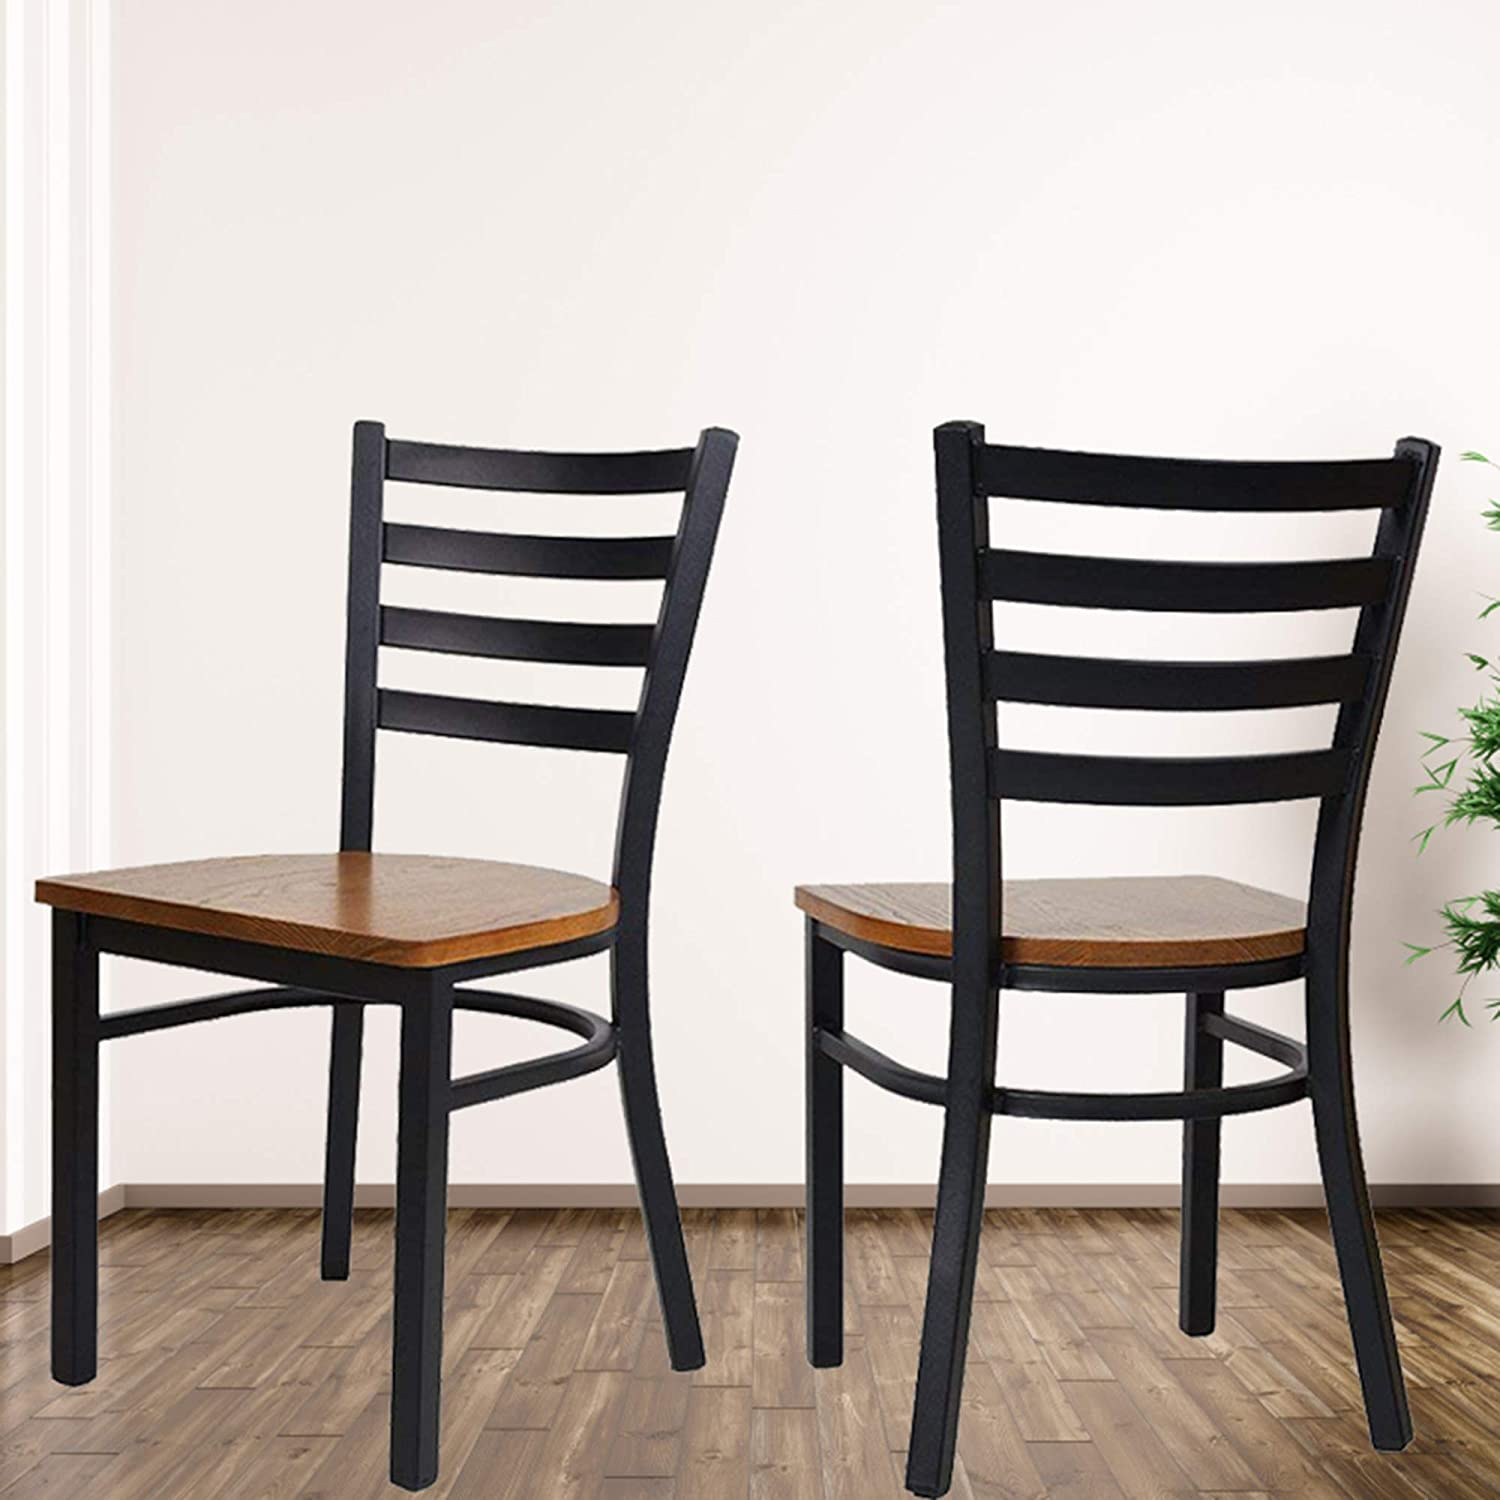 Amazon com karmas product fully assembled stackable metal dining chairs with solid wooden seat kitchen restaurant bistro cafe side chairs set of 2